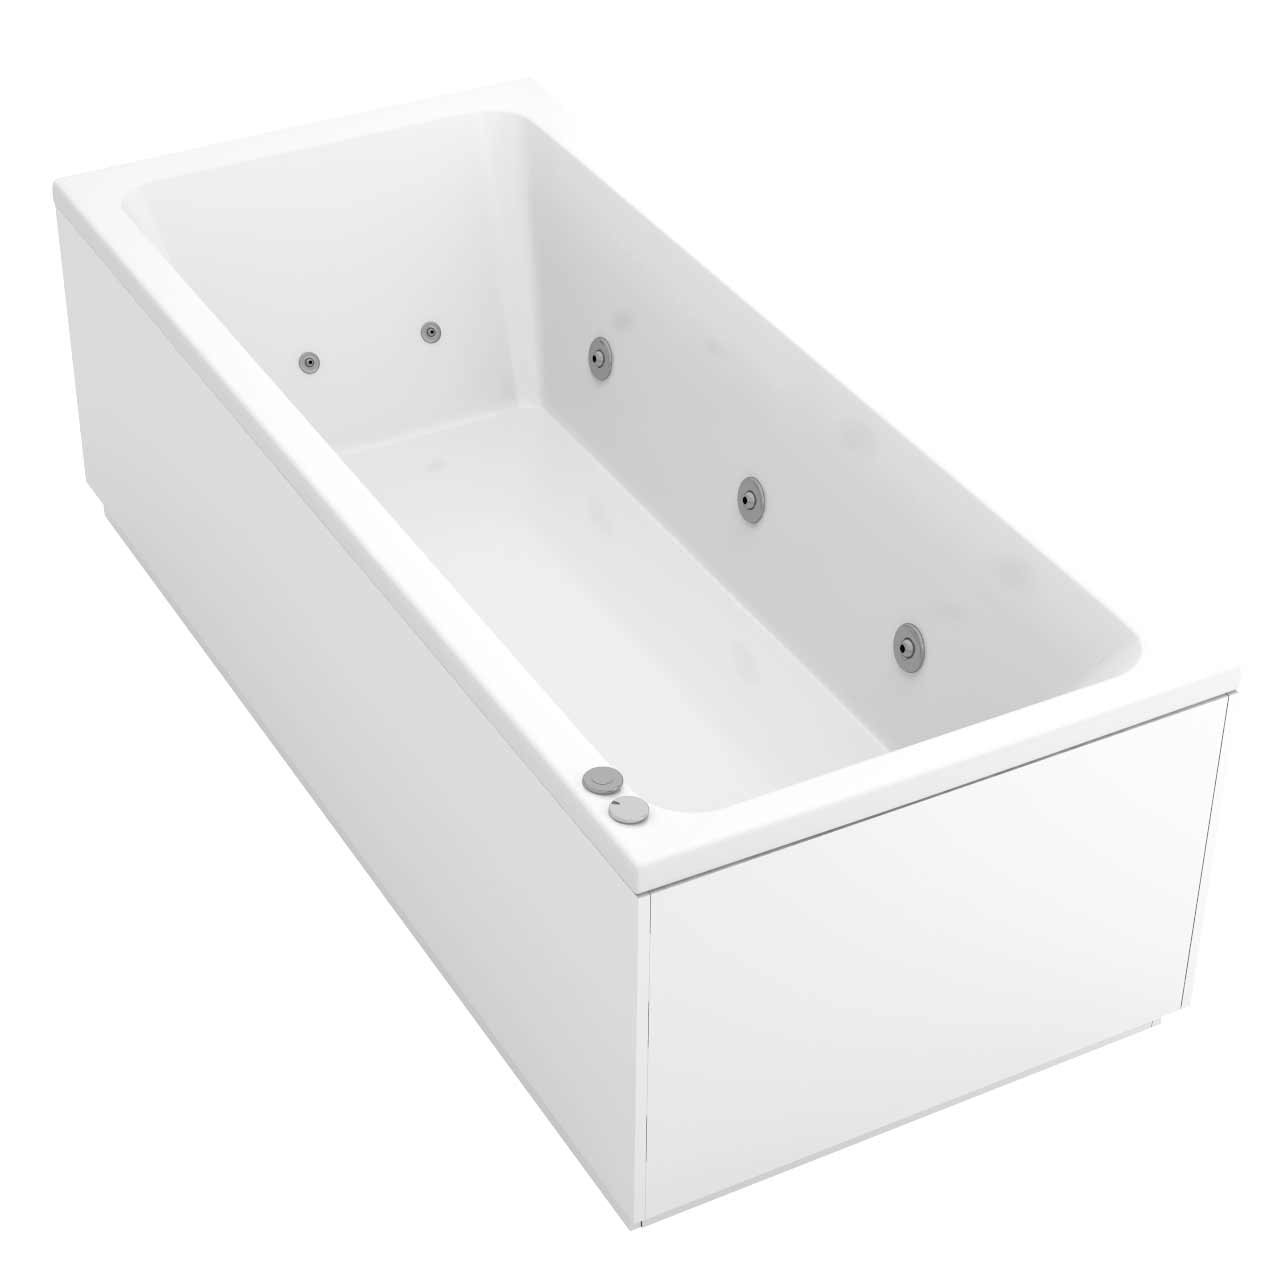 Square Centre Tap 12 Jet Chrome V-Tec Whirlpool Bath 1800x800mm